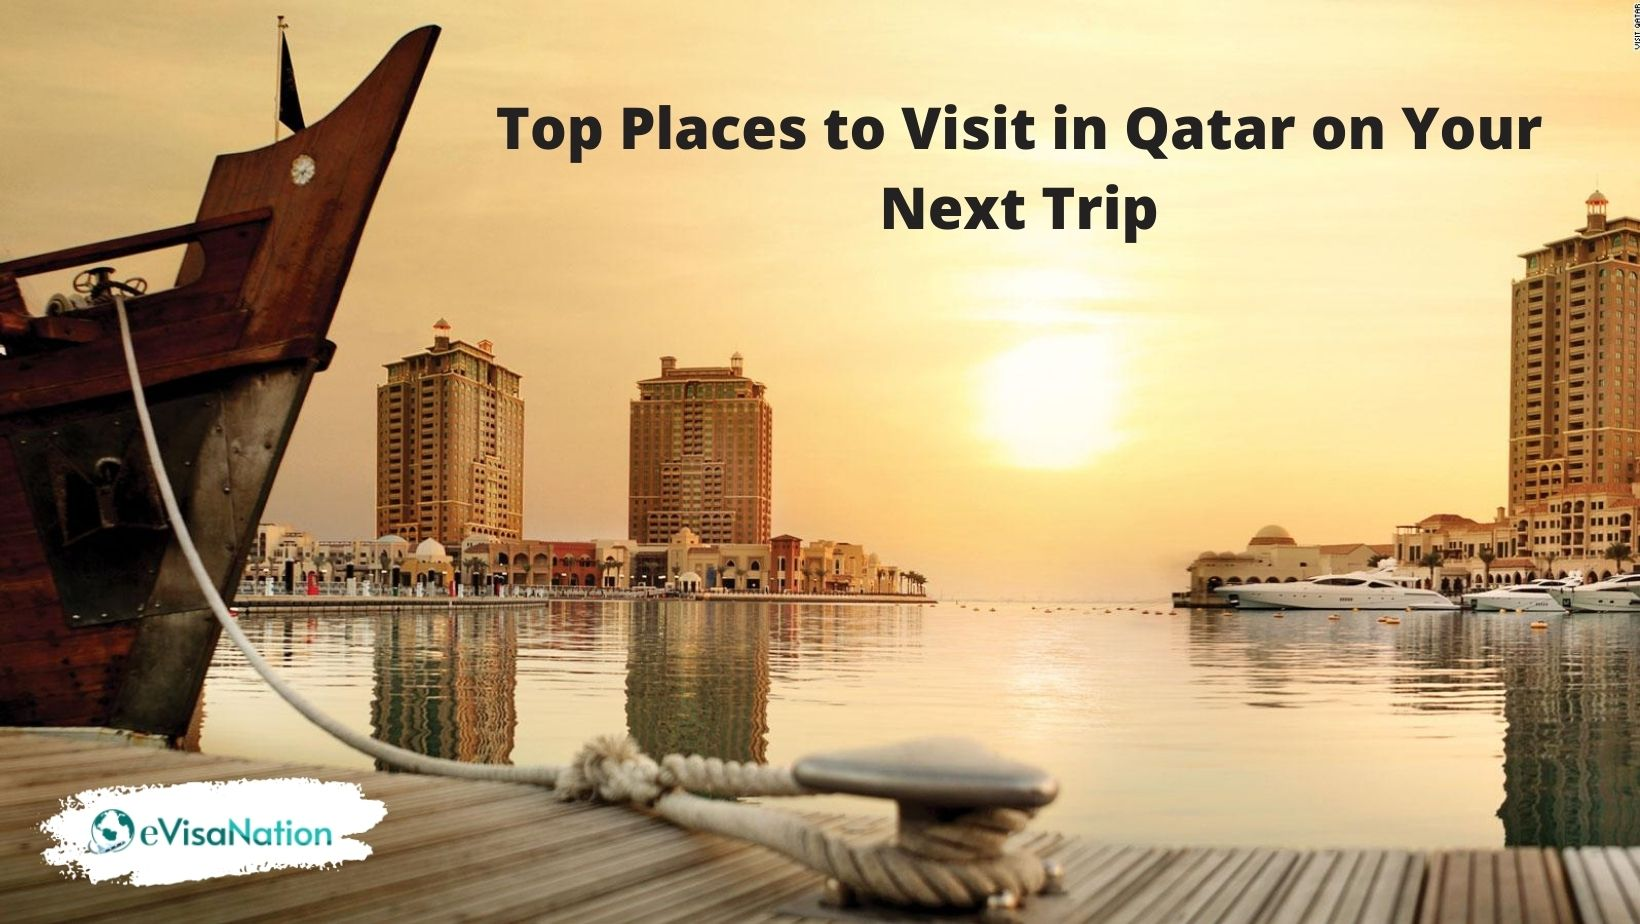 Nestled in the western part of Asia, Qatar is one of the largest transits